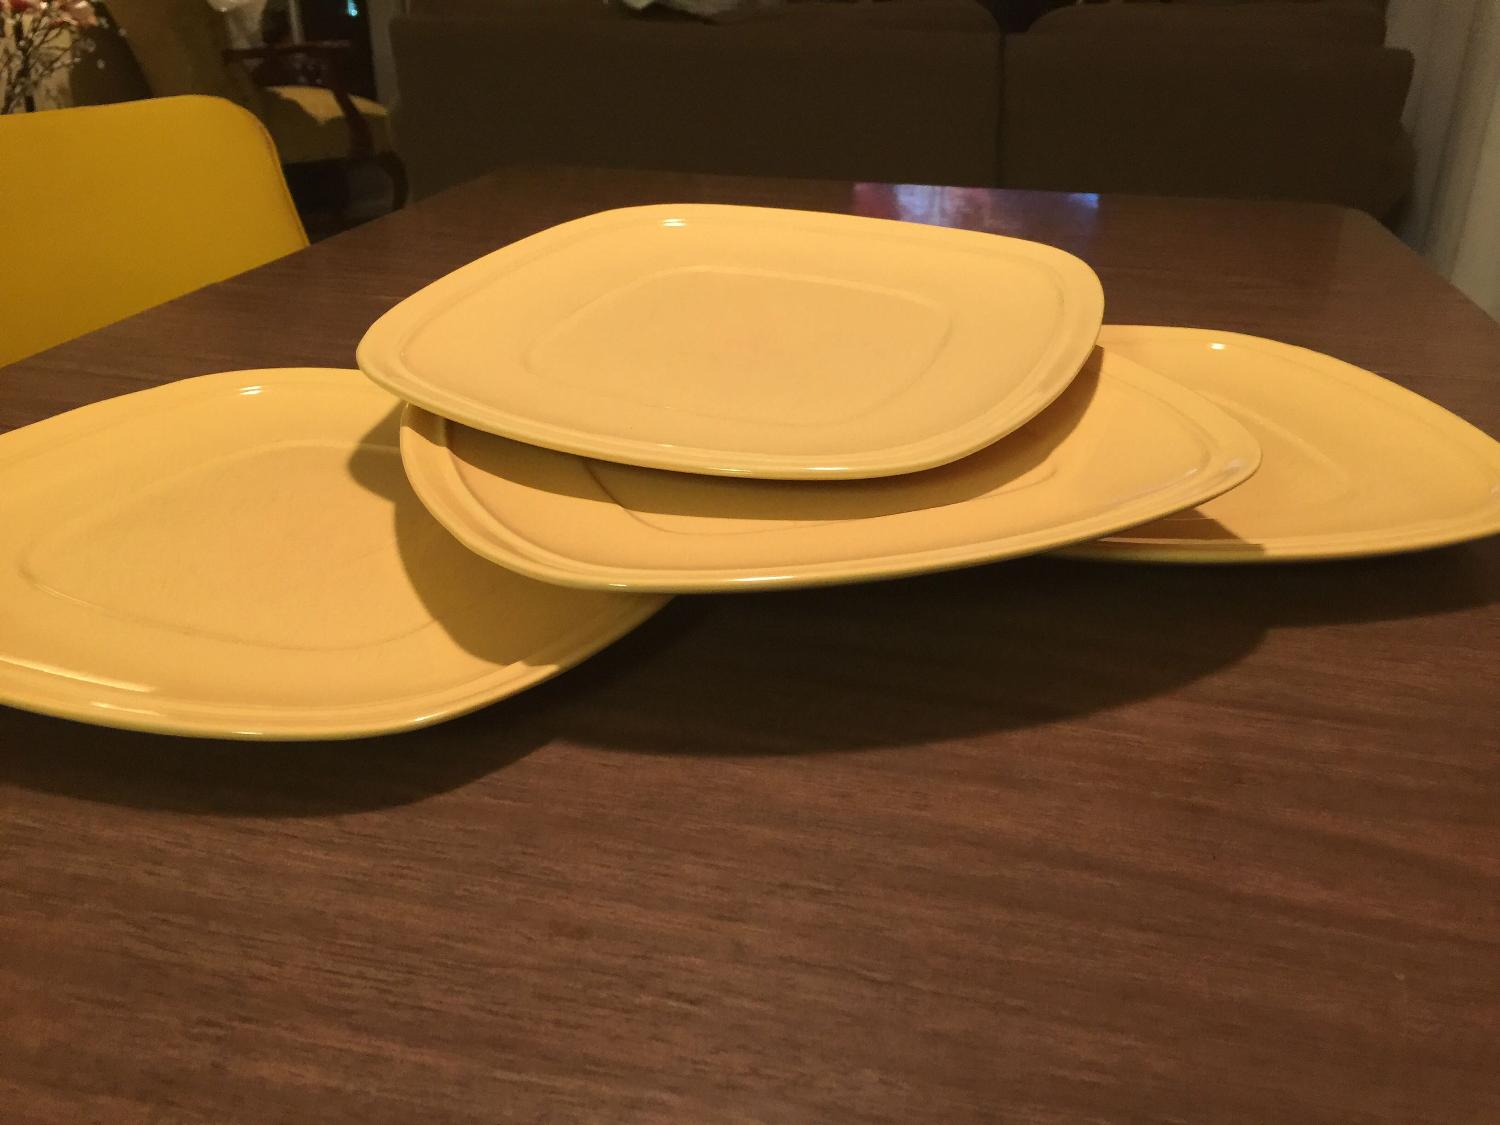 find more 4 large yellow dinner plates 5 for sale at up to 90 off. Black Bedroom Furniture Sets. Home Design Ideas